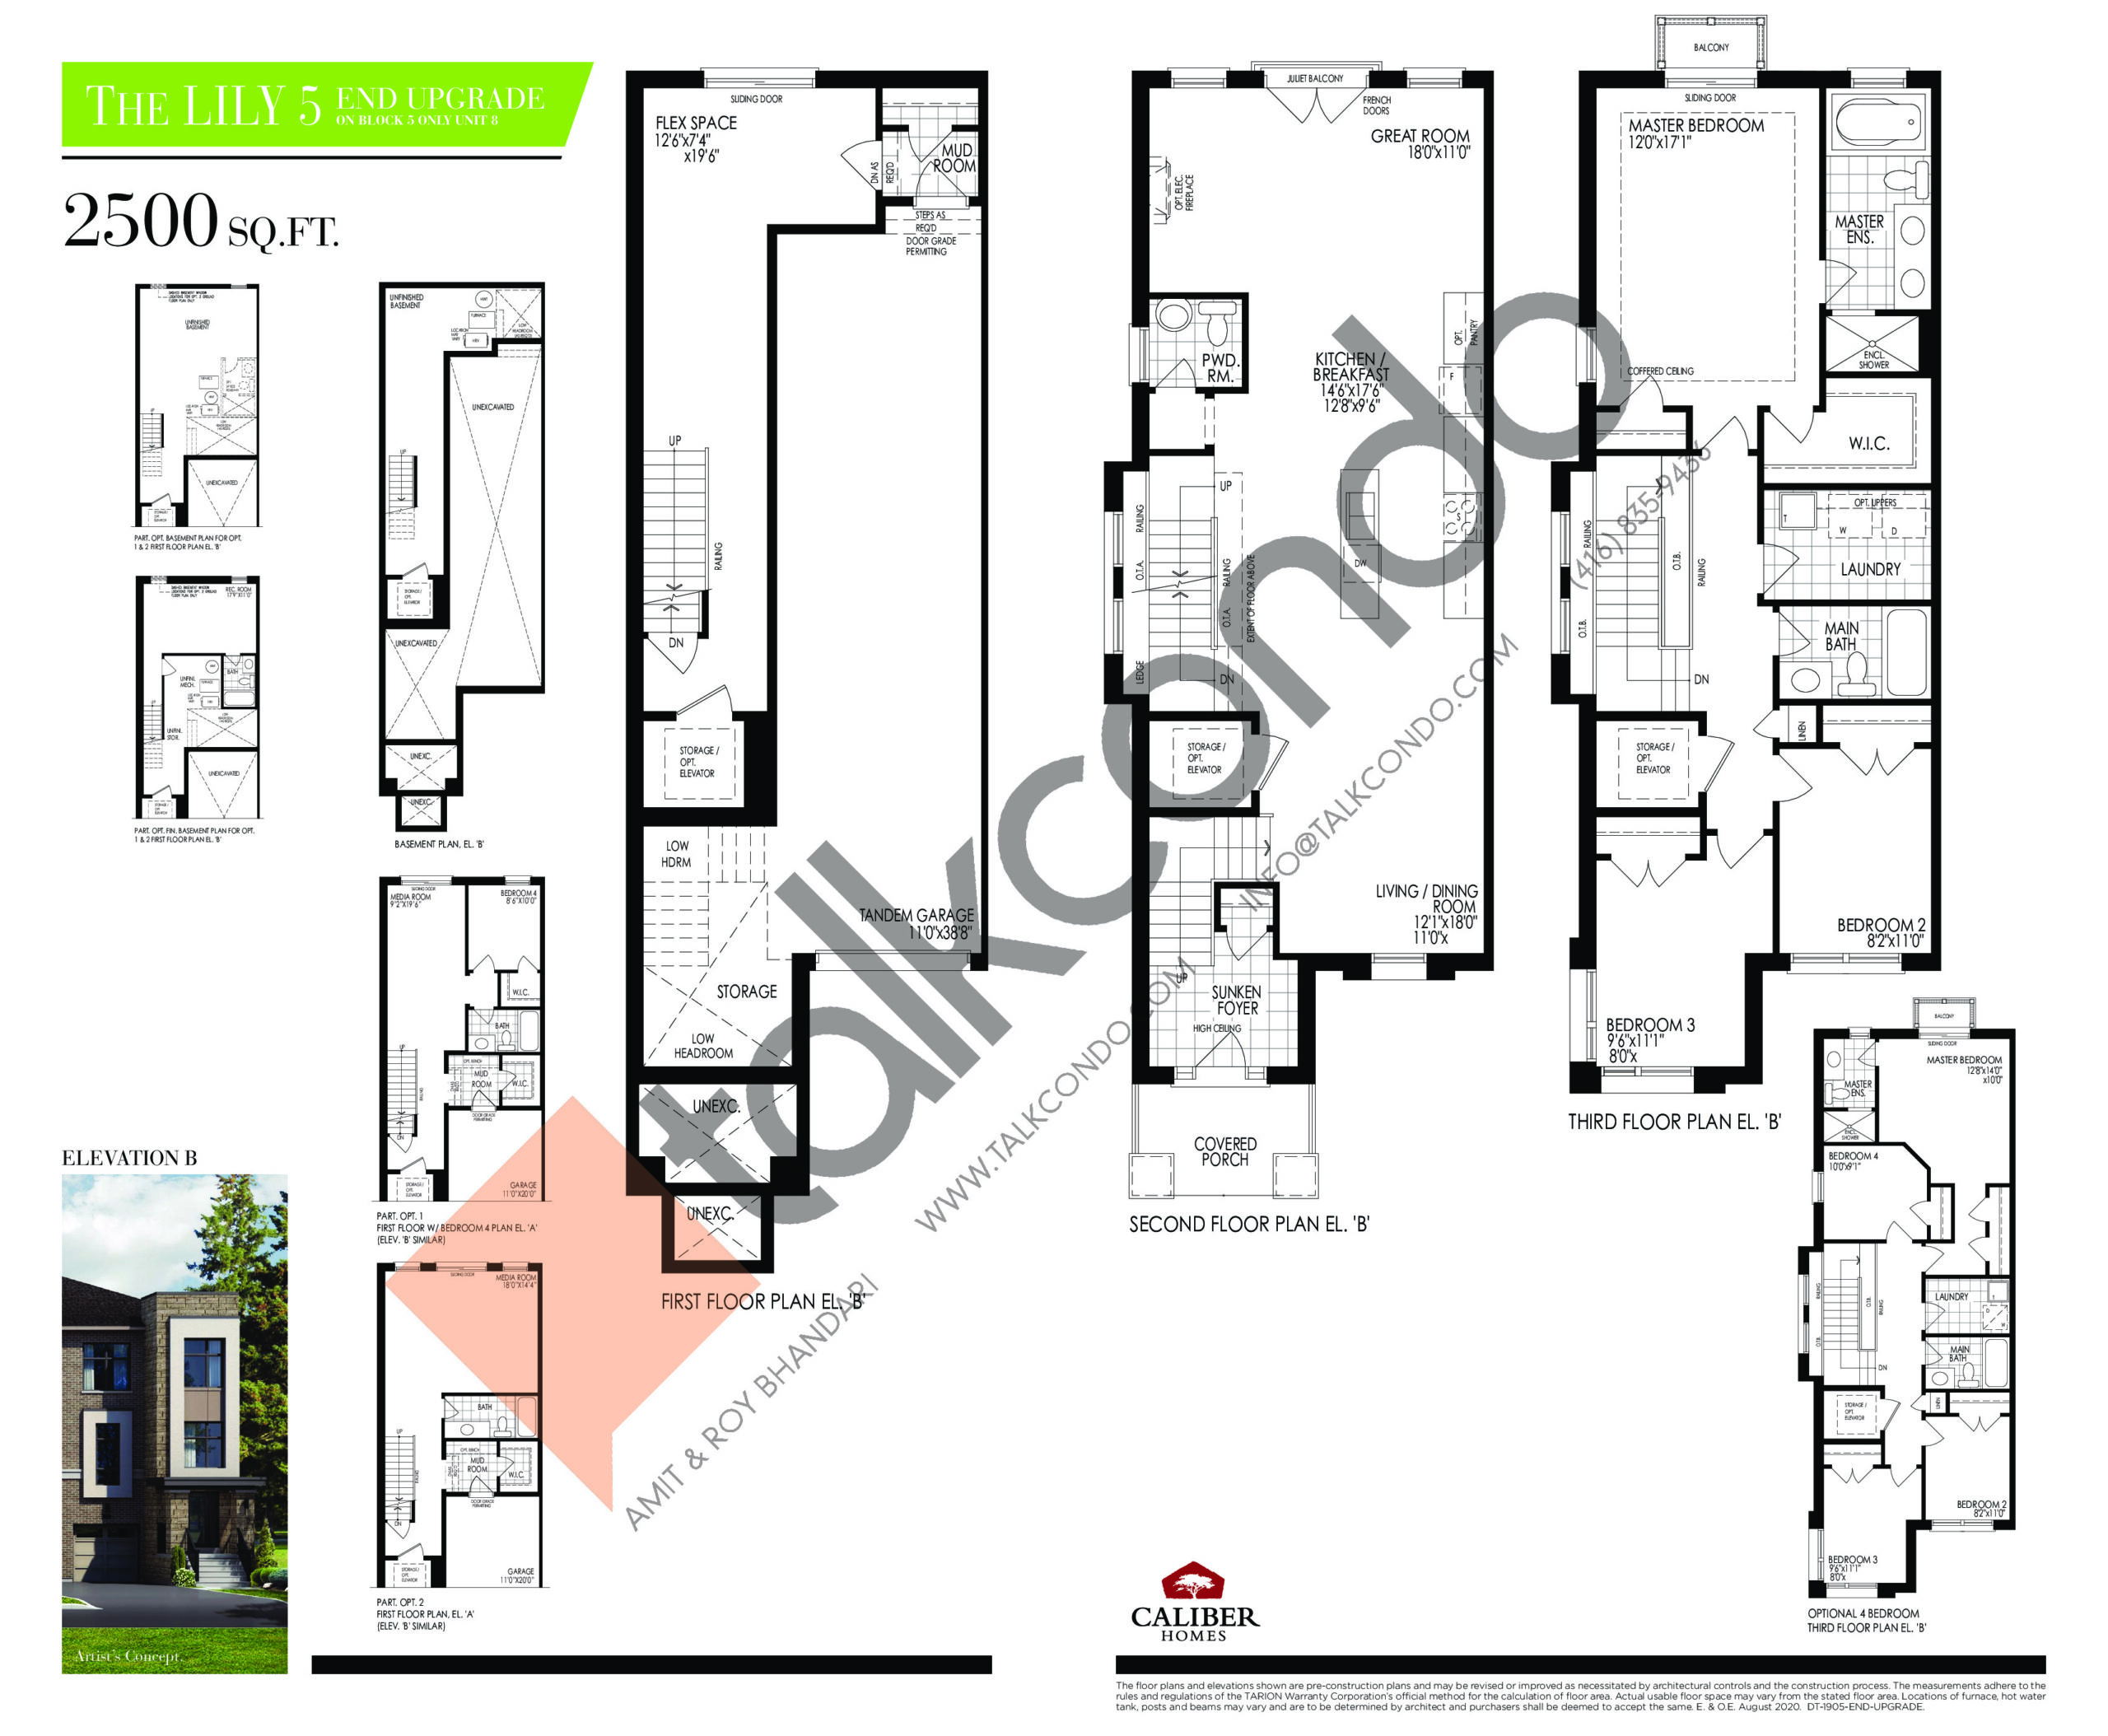 The Lily 5 - End Upgrade Floor Plan at Uplands of Swan Lake Towns - 2500 sq.ft